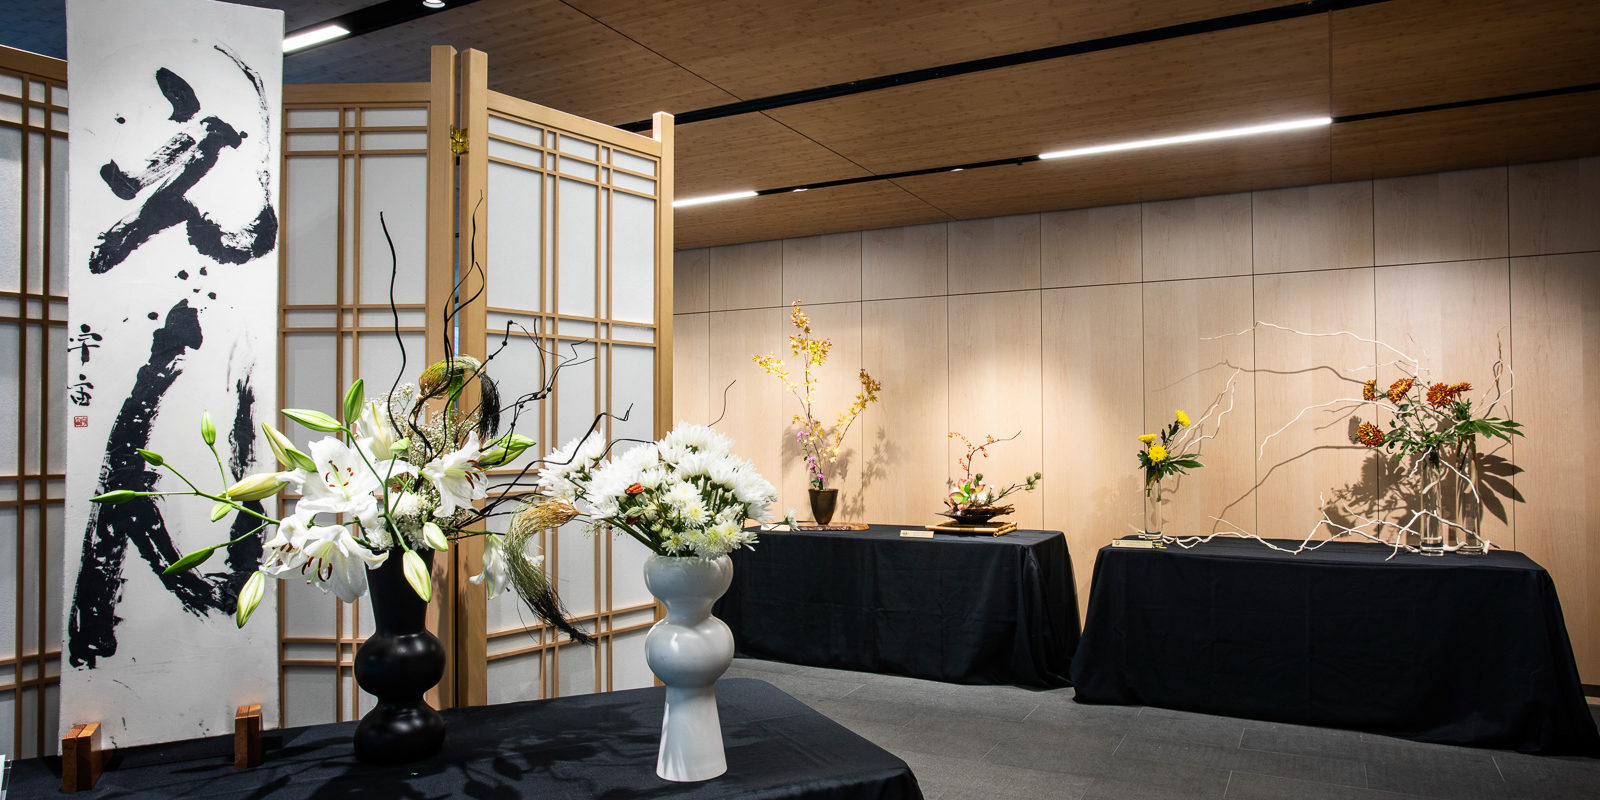 Ikebana international - 102018 - image-001-2